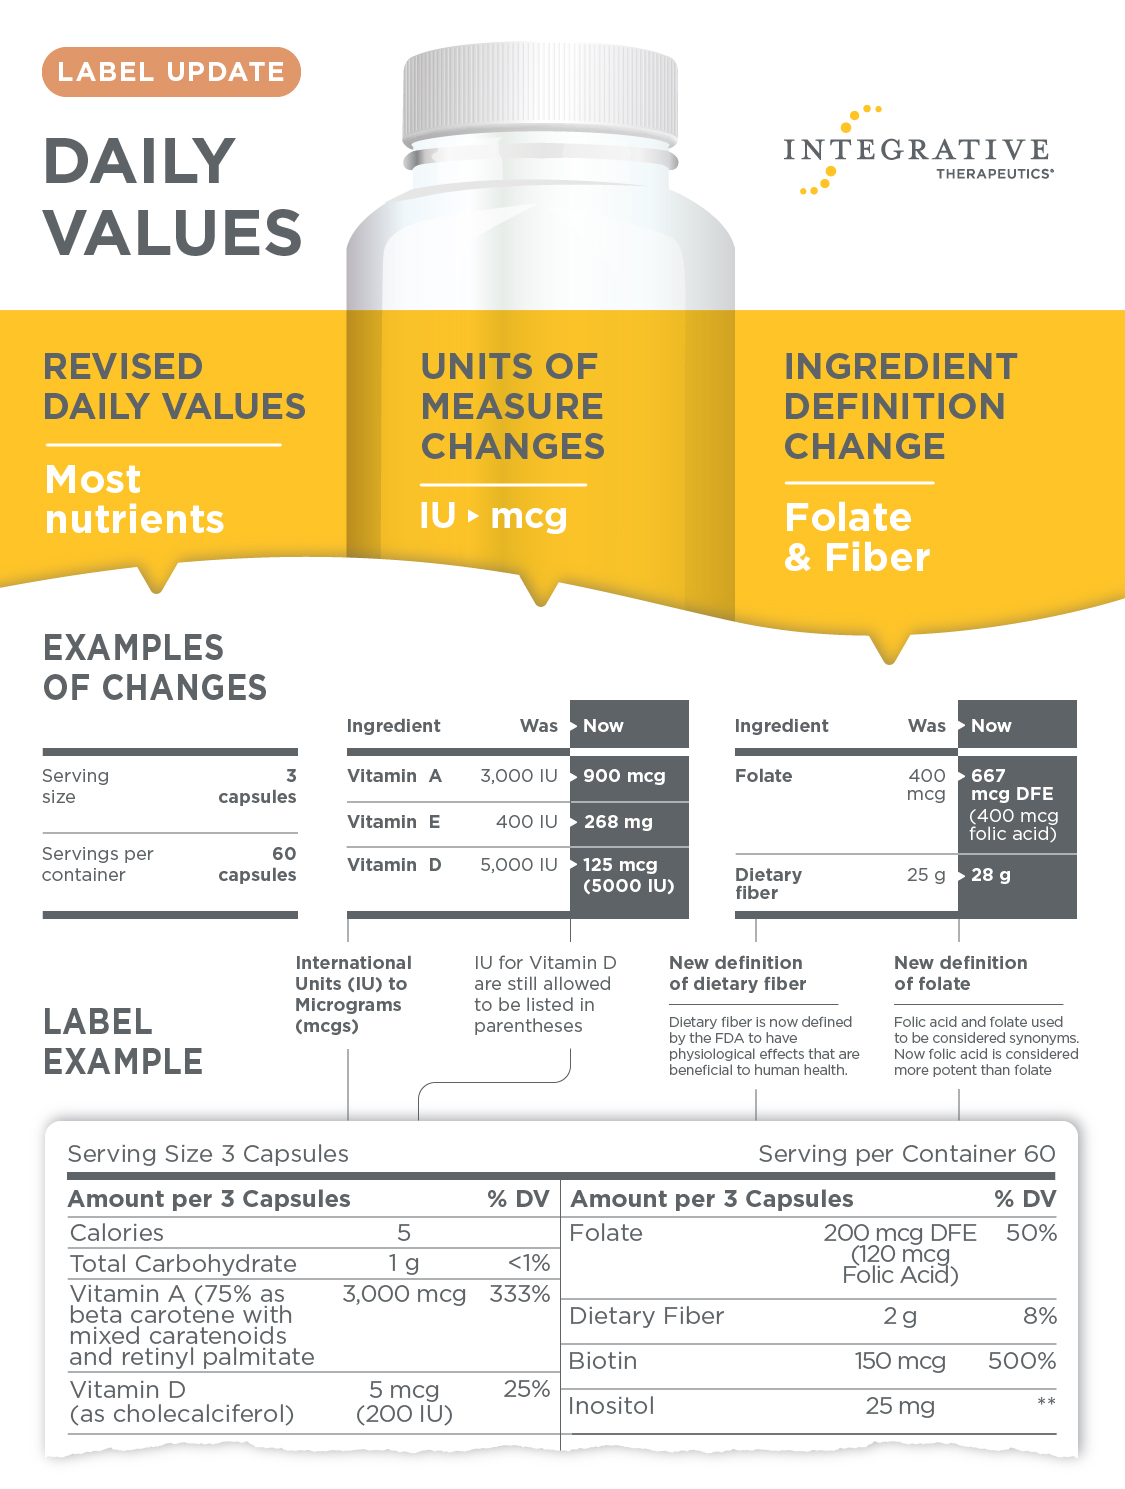 Label Update: Daily Values. Revised Daily Values – Most nutrients. Units of Measure Changes – IU to mcg, IU for Vitamin D are still allowed to be listed in parentheses. Ingredient definition Change – Folate acid and folate used to be considered synonyms. Now folic acid is considered more potent than folate. Fiber is now defined by the FDA to have physiological effects that are beneficial to human health.